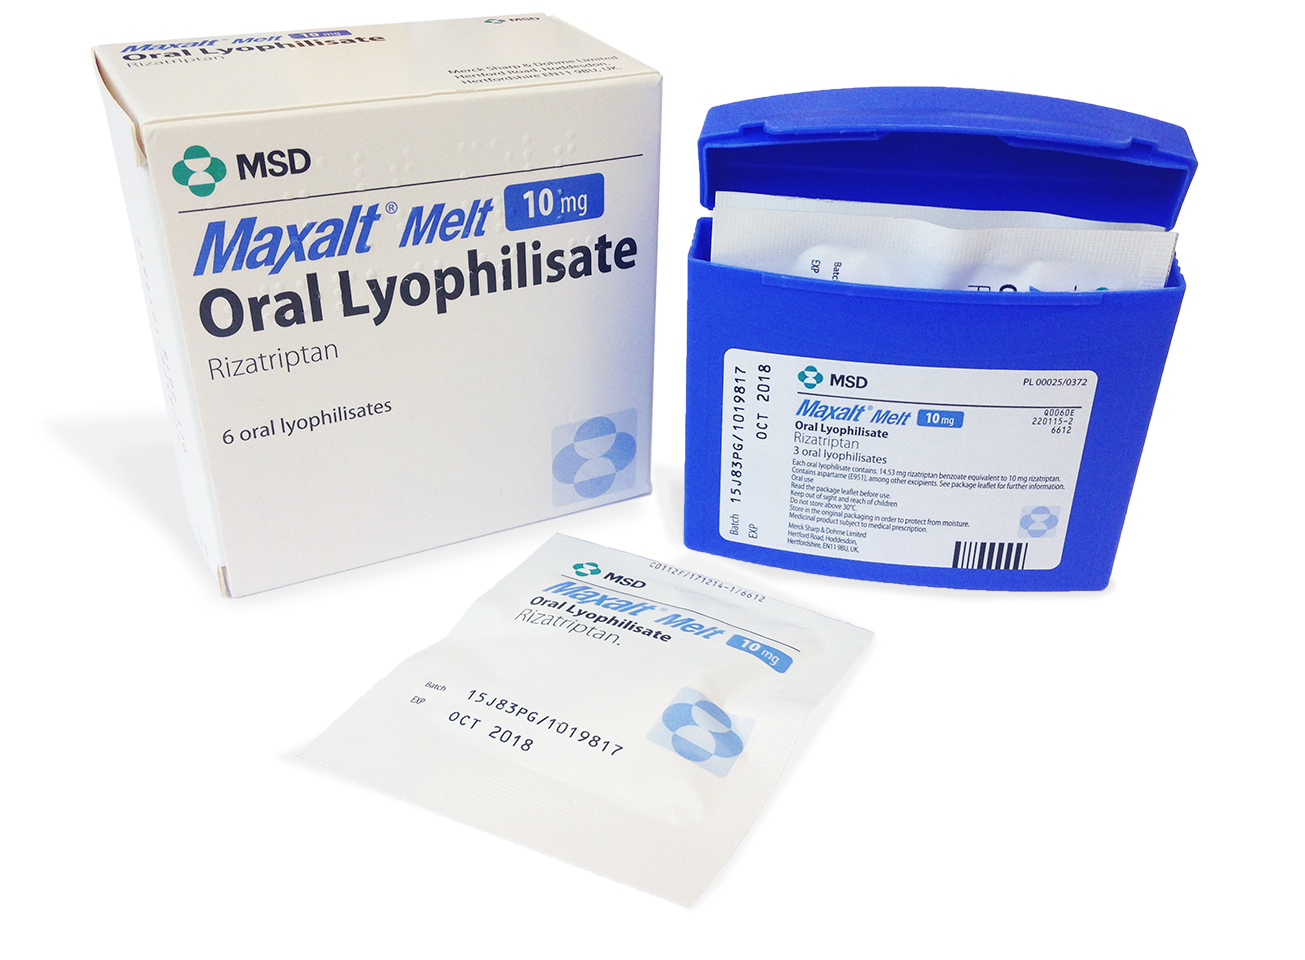 MAXALT Melt 10 mg Oral Lyophilisate packaging includes an outer box, plastic container and individual packet